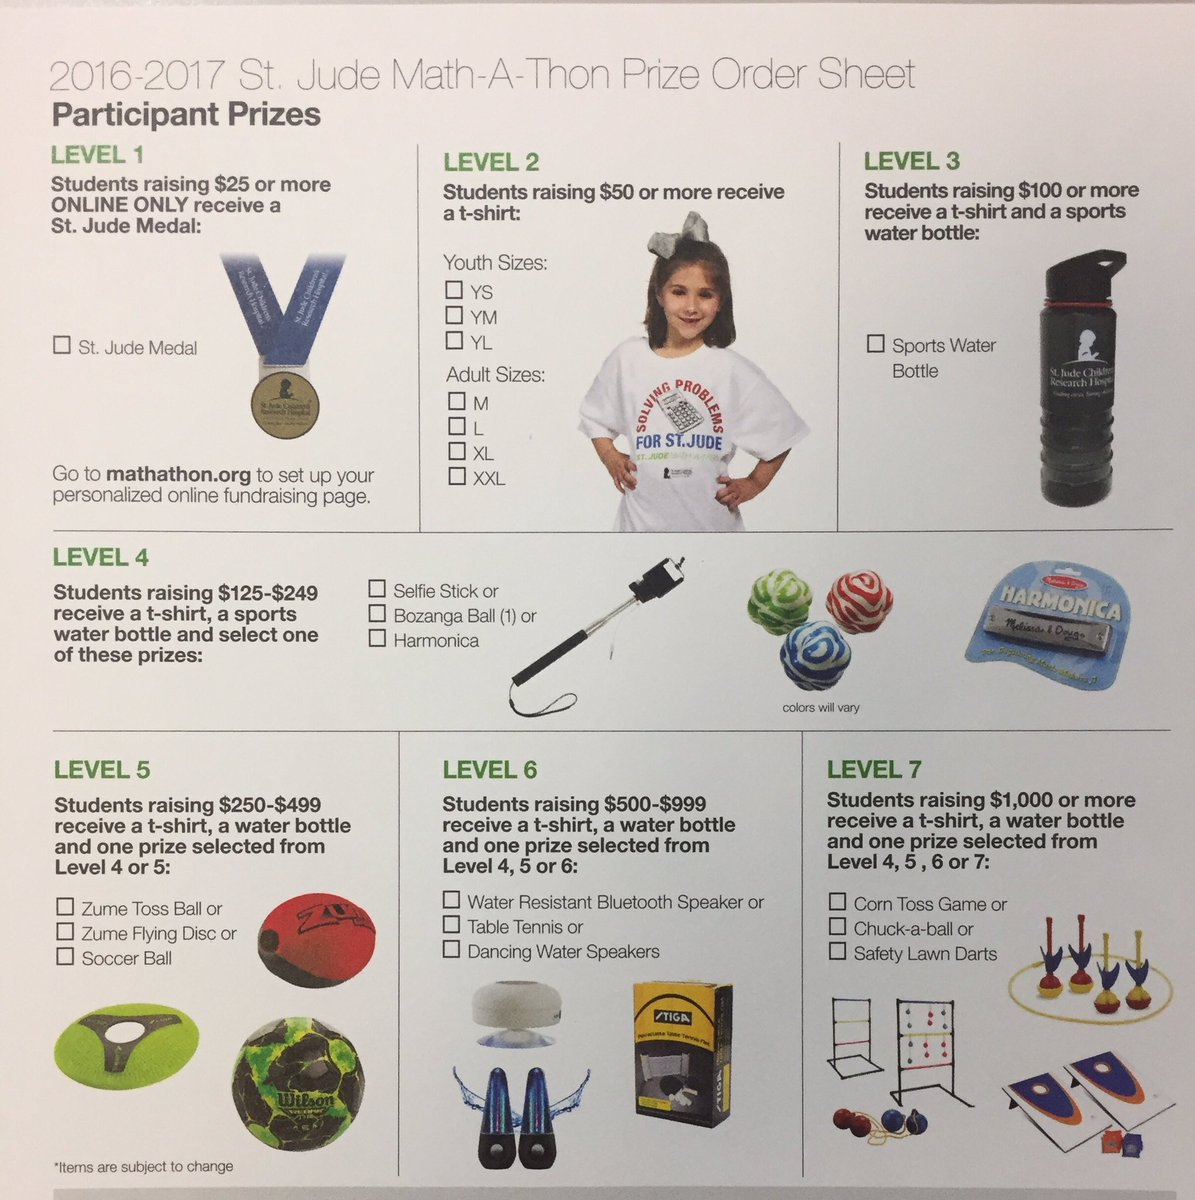 St judes mathathon prizes for students